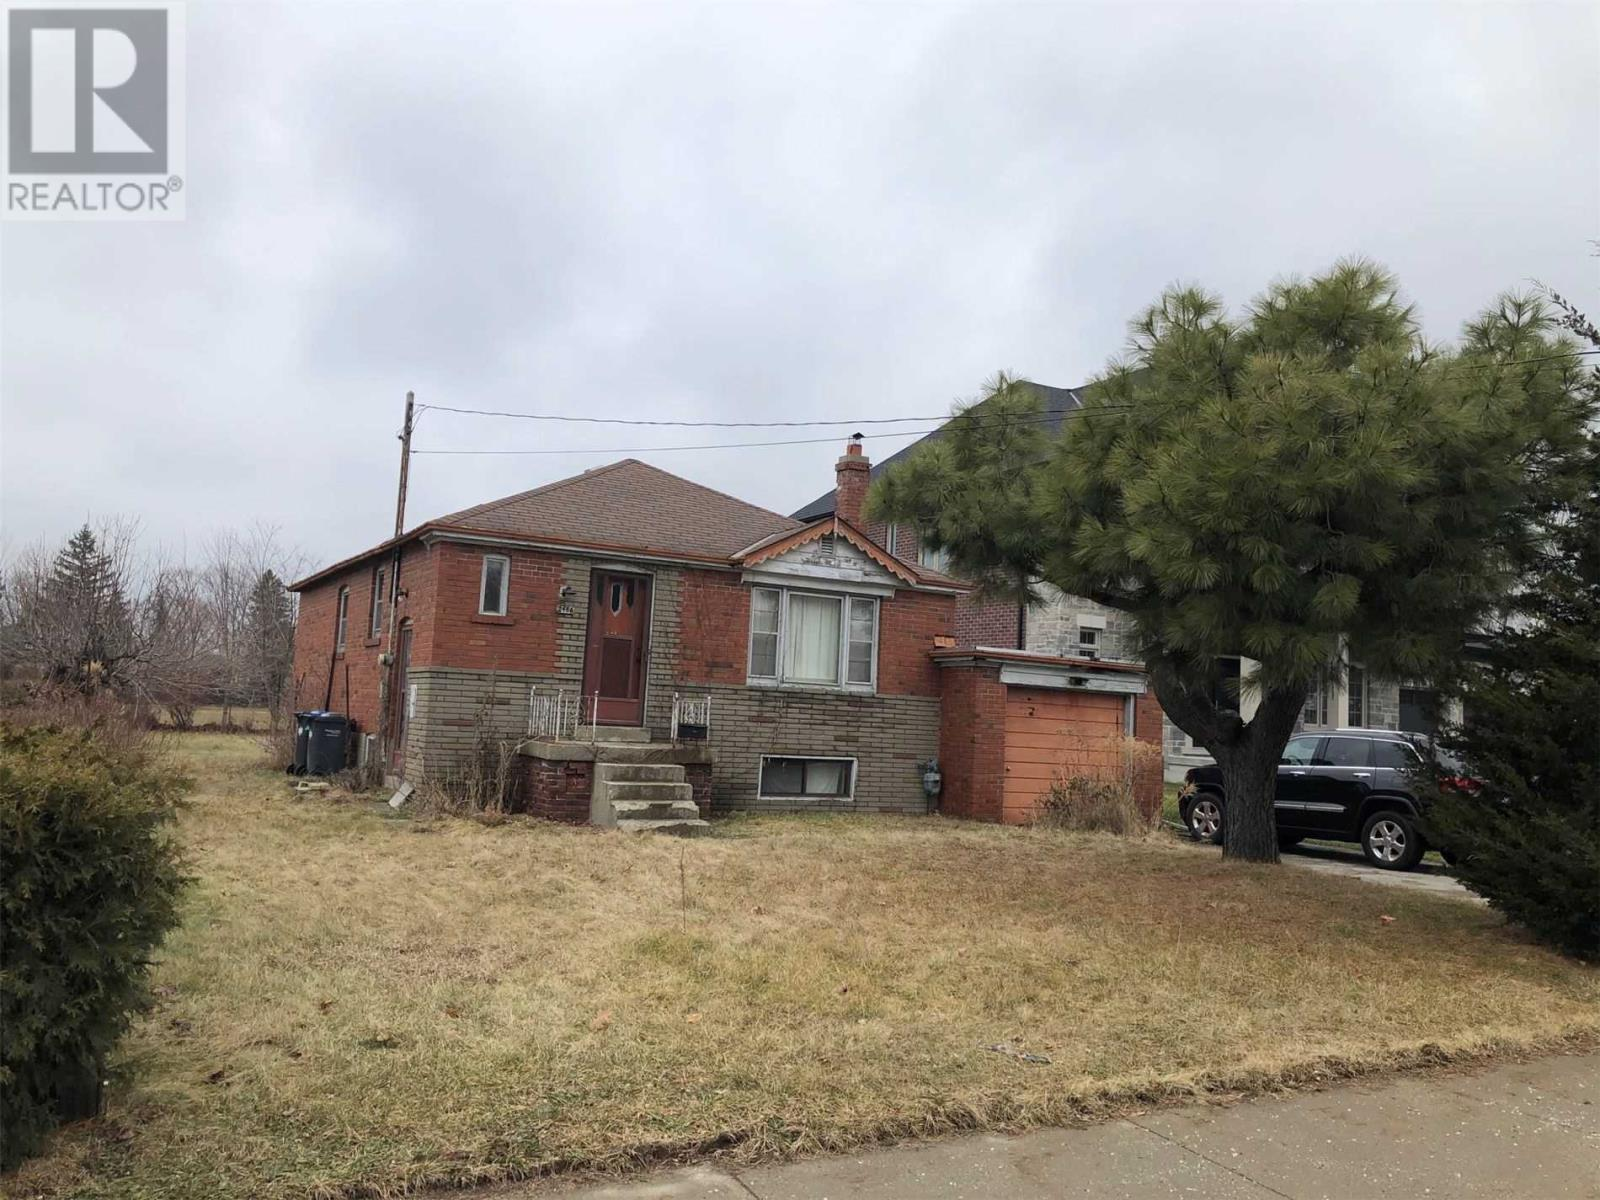 2486 Donnavale Dr, Mississauga, Ontario  L5A 2N1 - Photo 4 - W4667960